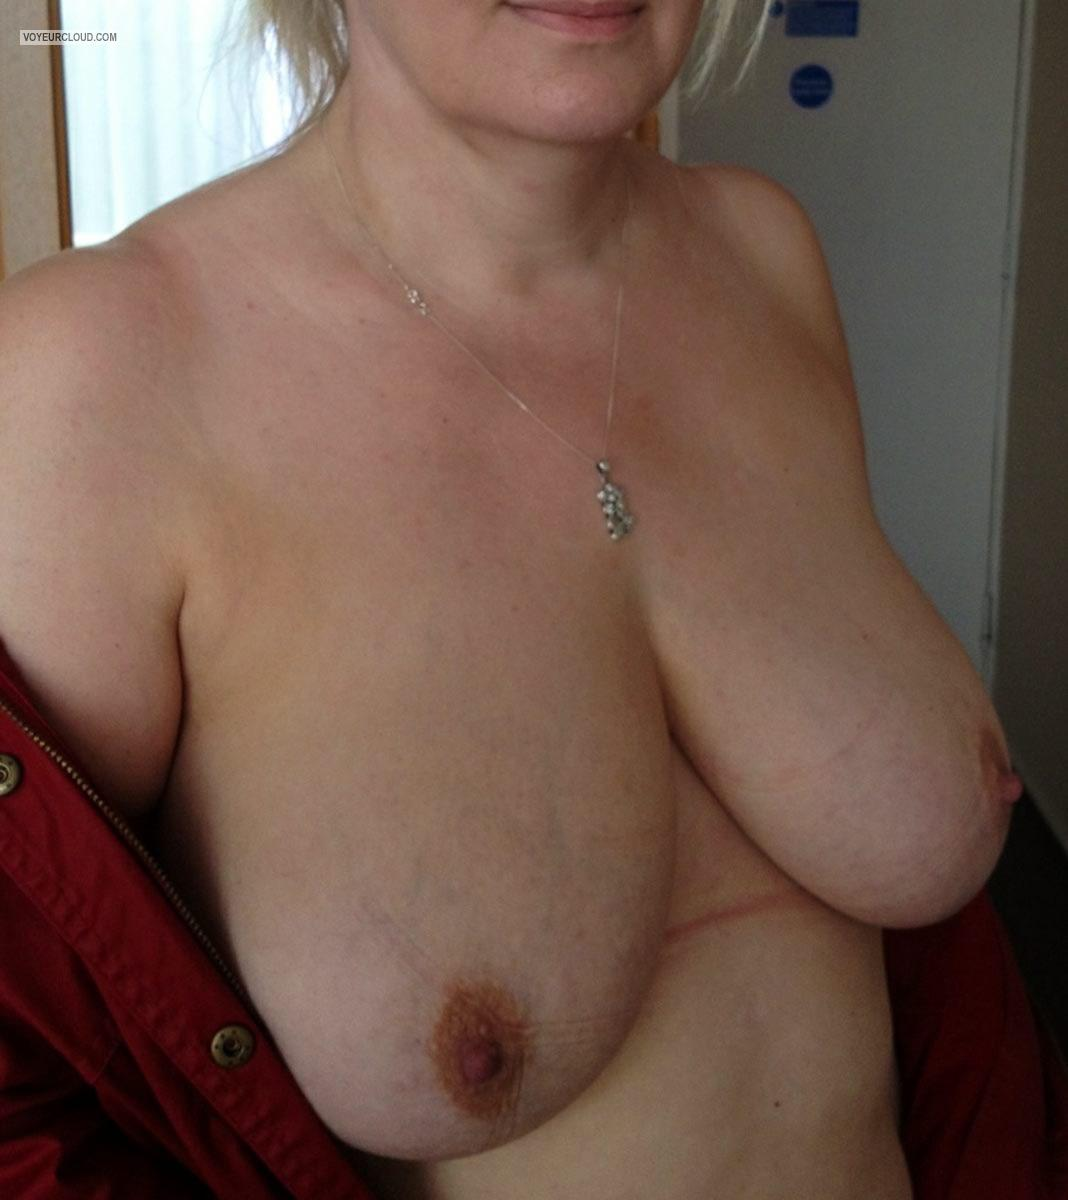 Tit Flash: Big Tits By IPhone - Ripe from Ireland